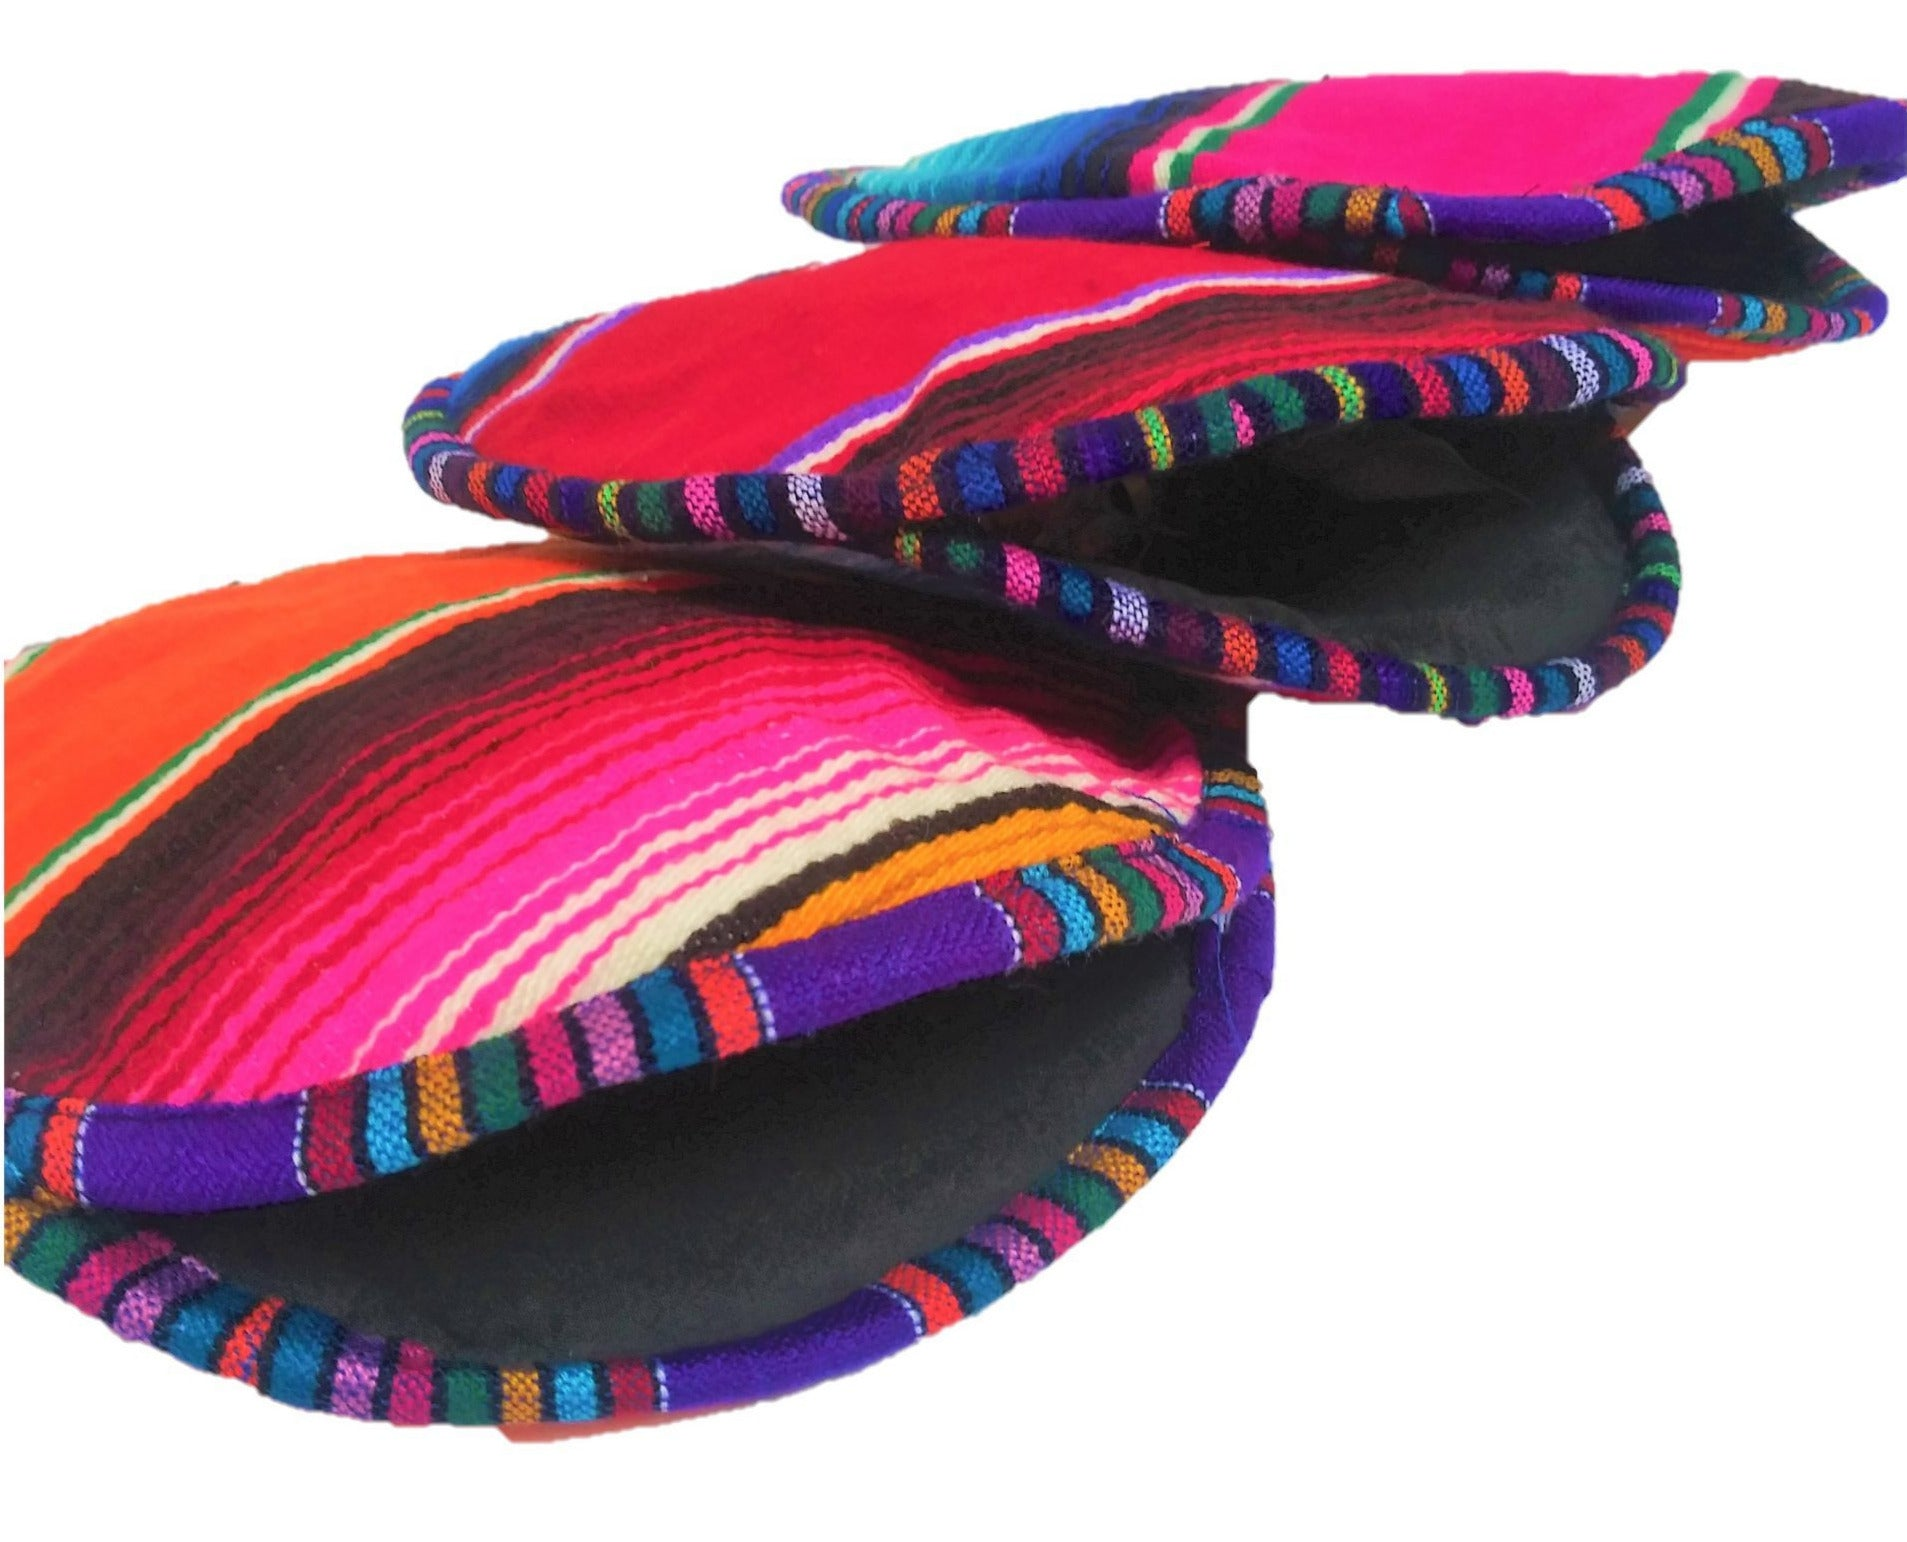 Insulated Mexican Serape Fabric Tortilla Warmer